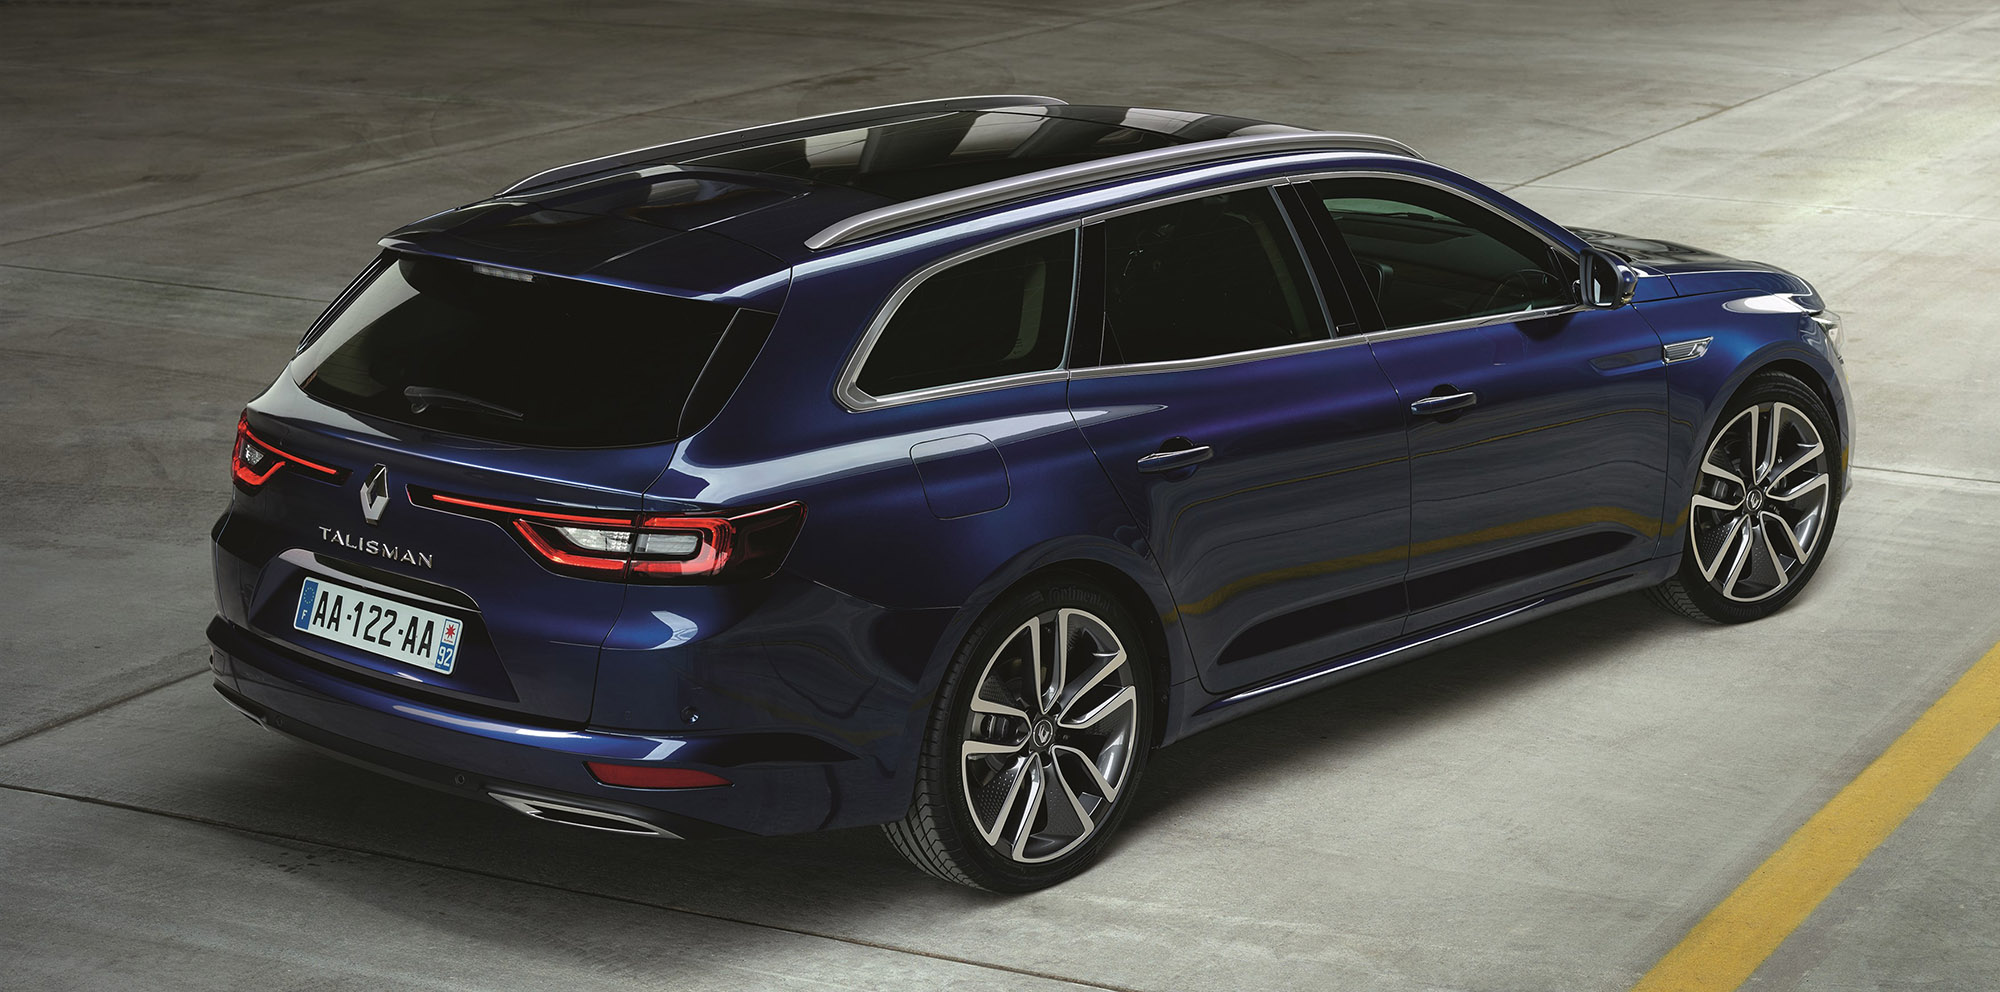 renault talisman wagon revealed ahead of frankfurt photos caradvice. Black Bedroom Furniture Sets. Home Design Ideas